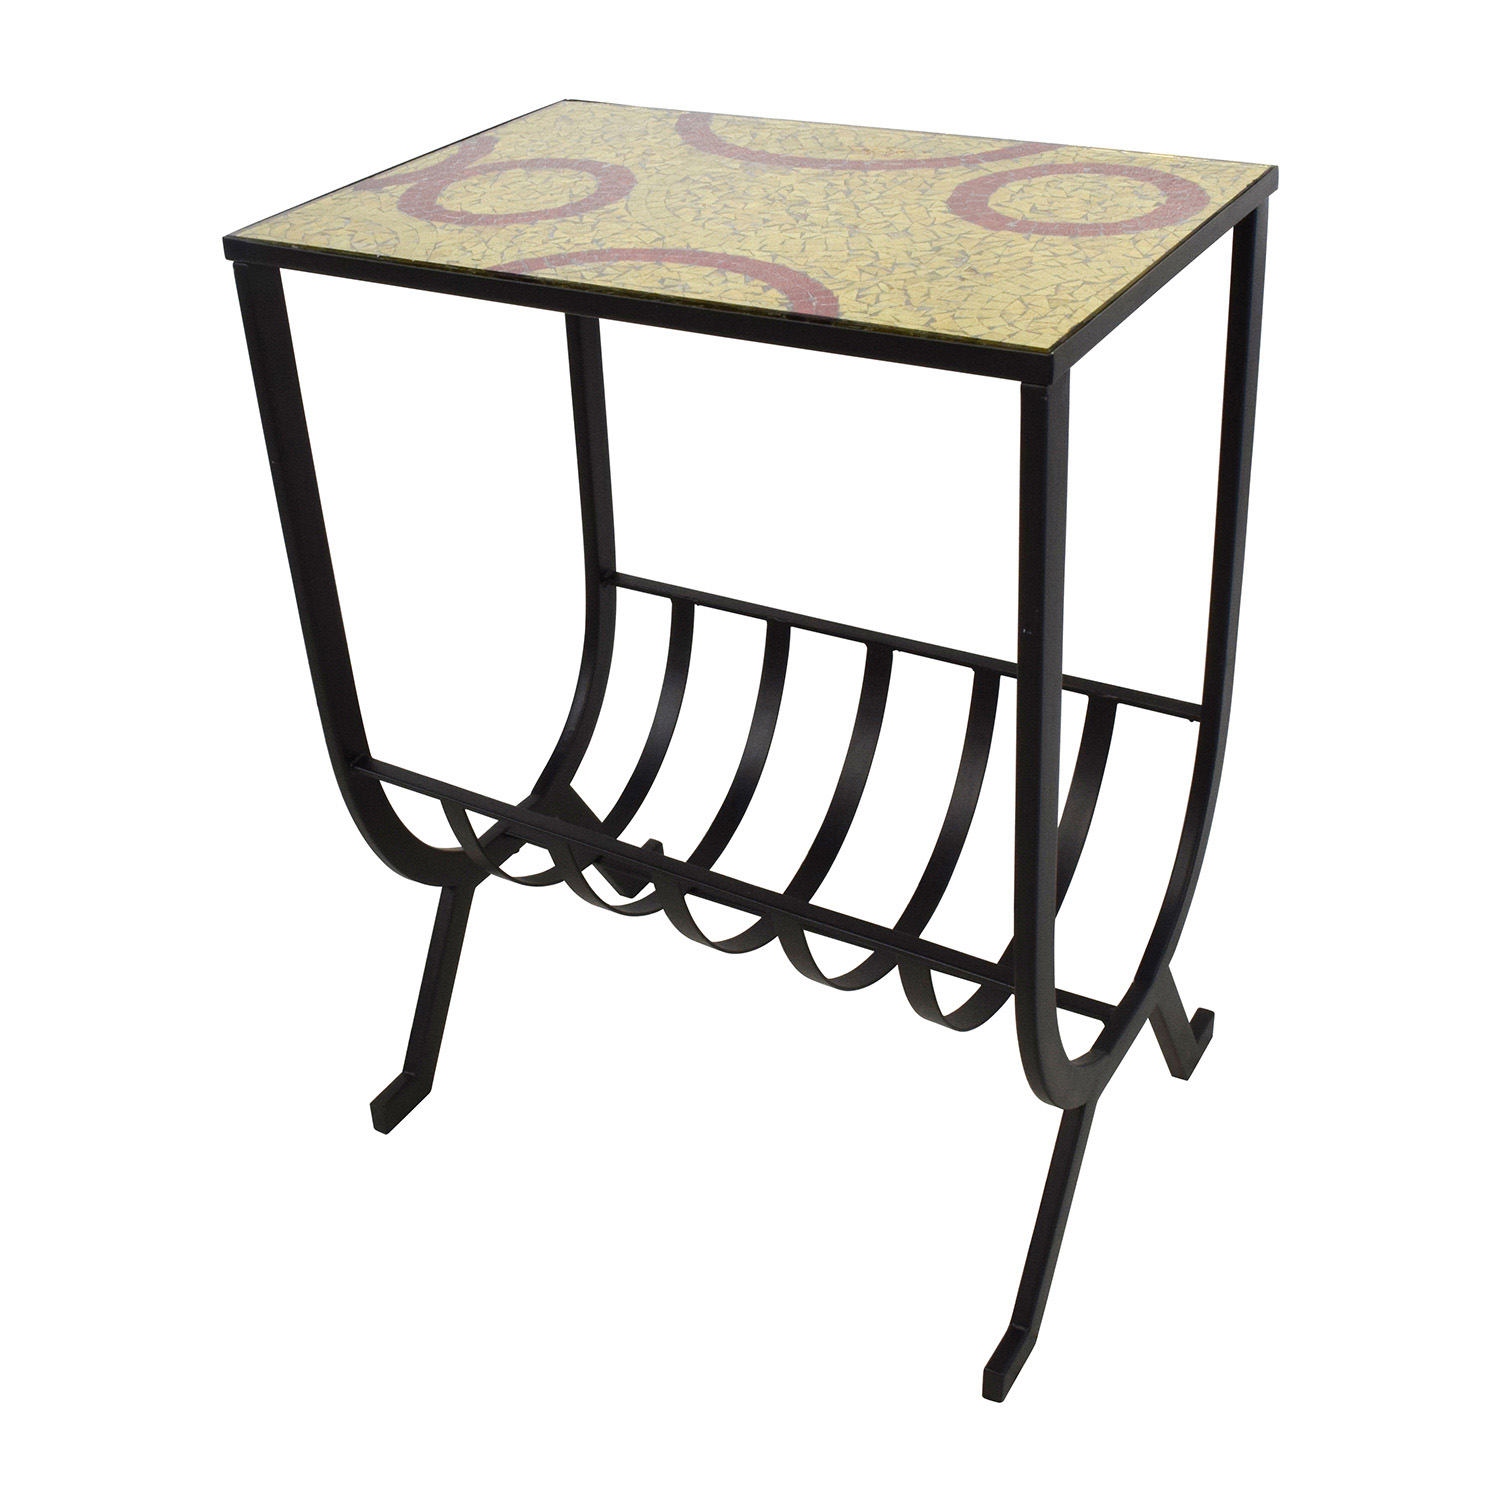 off pier mosaic magazine accent table tables with outdoor elba storage bench cushion ikea little kid chairs vinyl covers pub dining set black and white linens wicker coffee glass